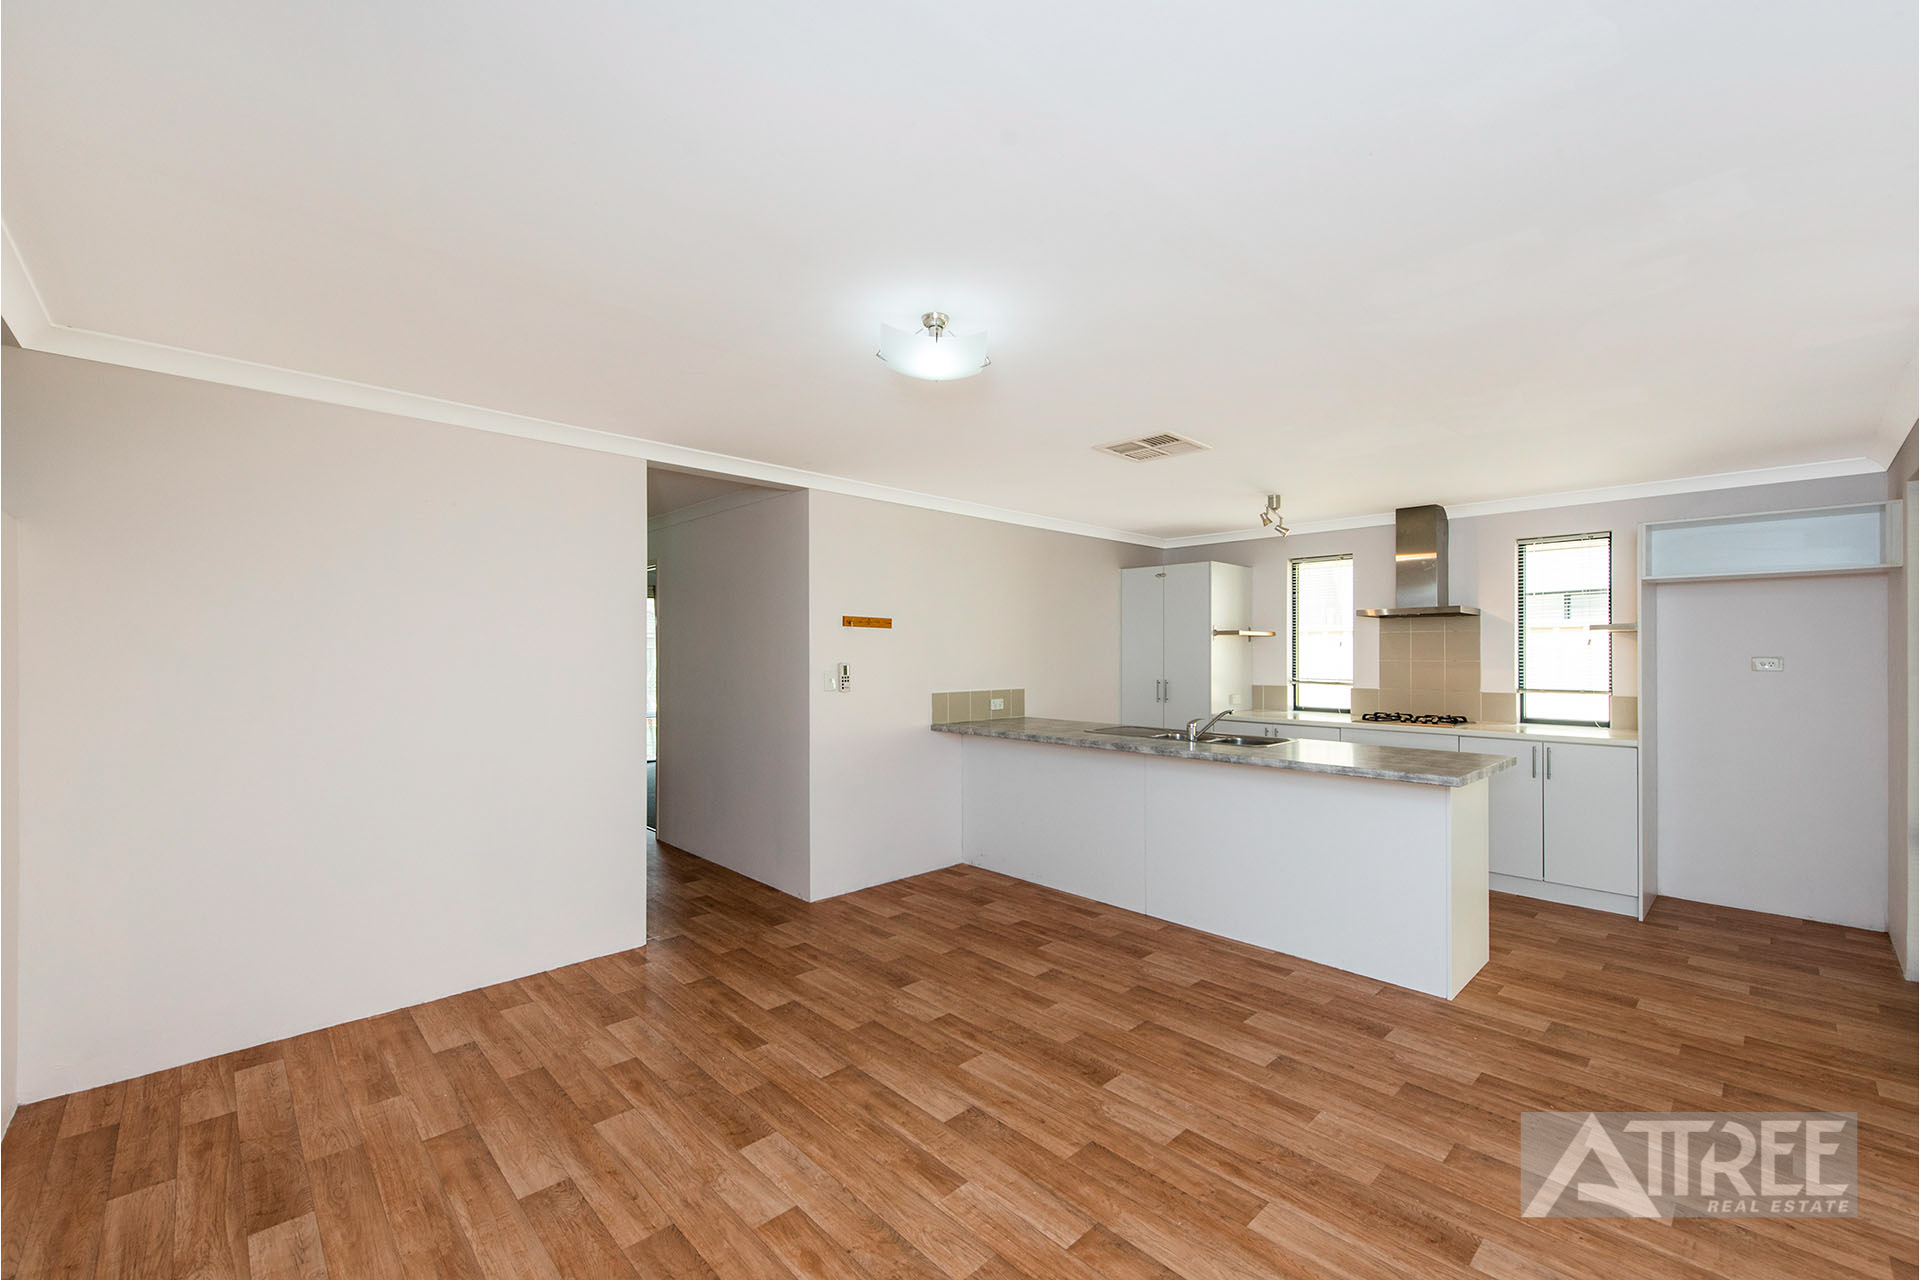 Property for sale in CANNING VALE, 15 Hodgkinson Turn : Attree Real Estate